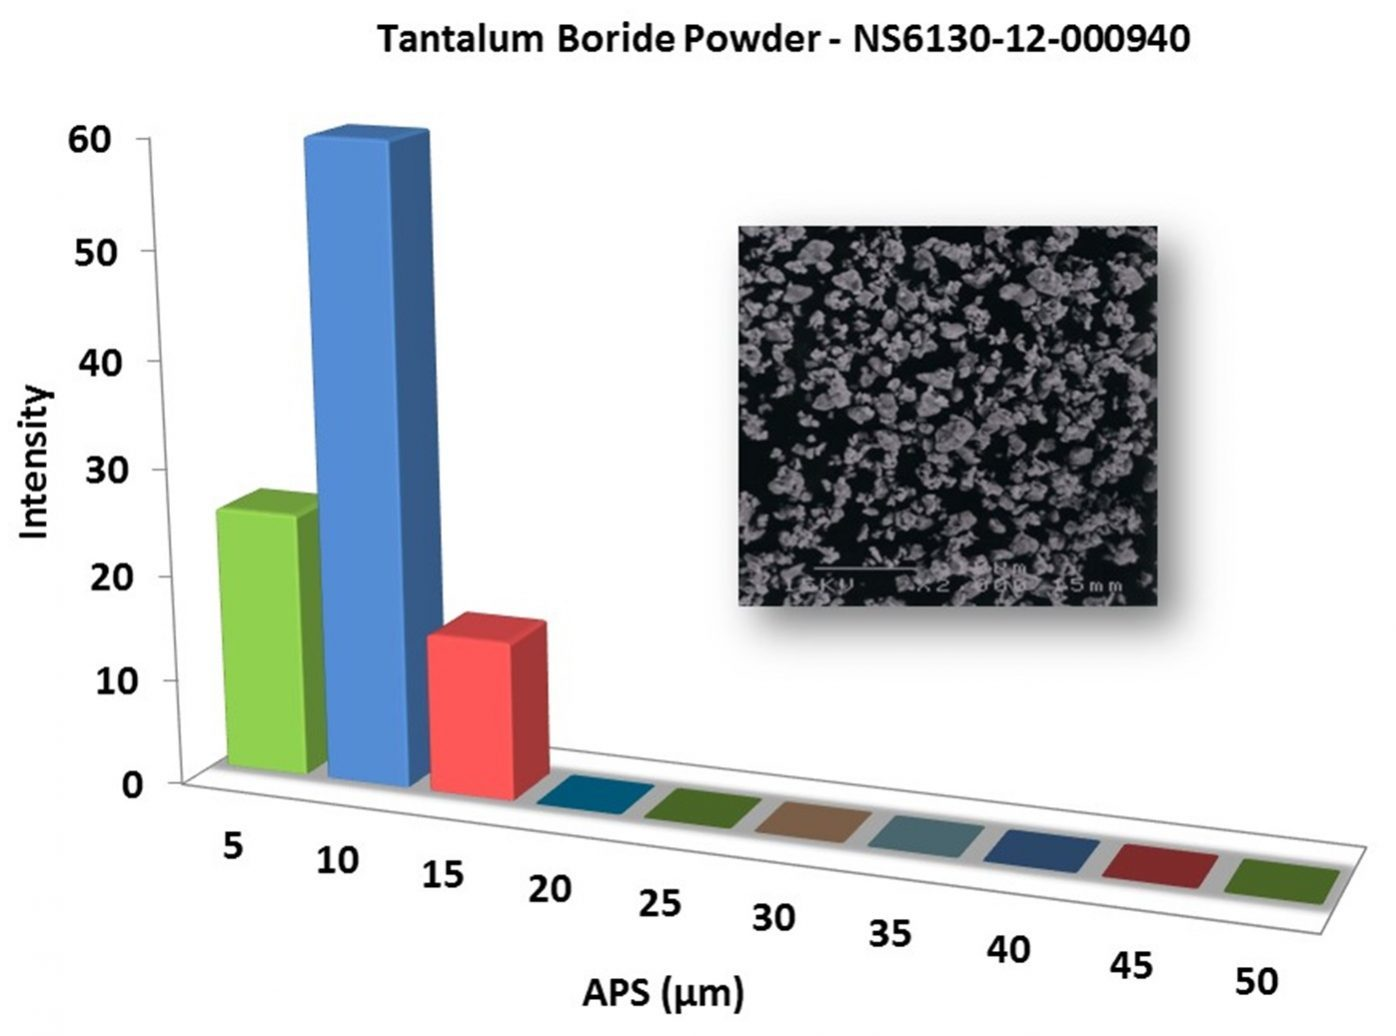 Particles Size Analysis – TaB2 Powder